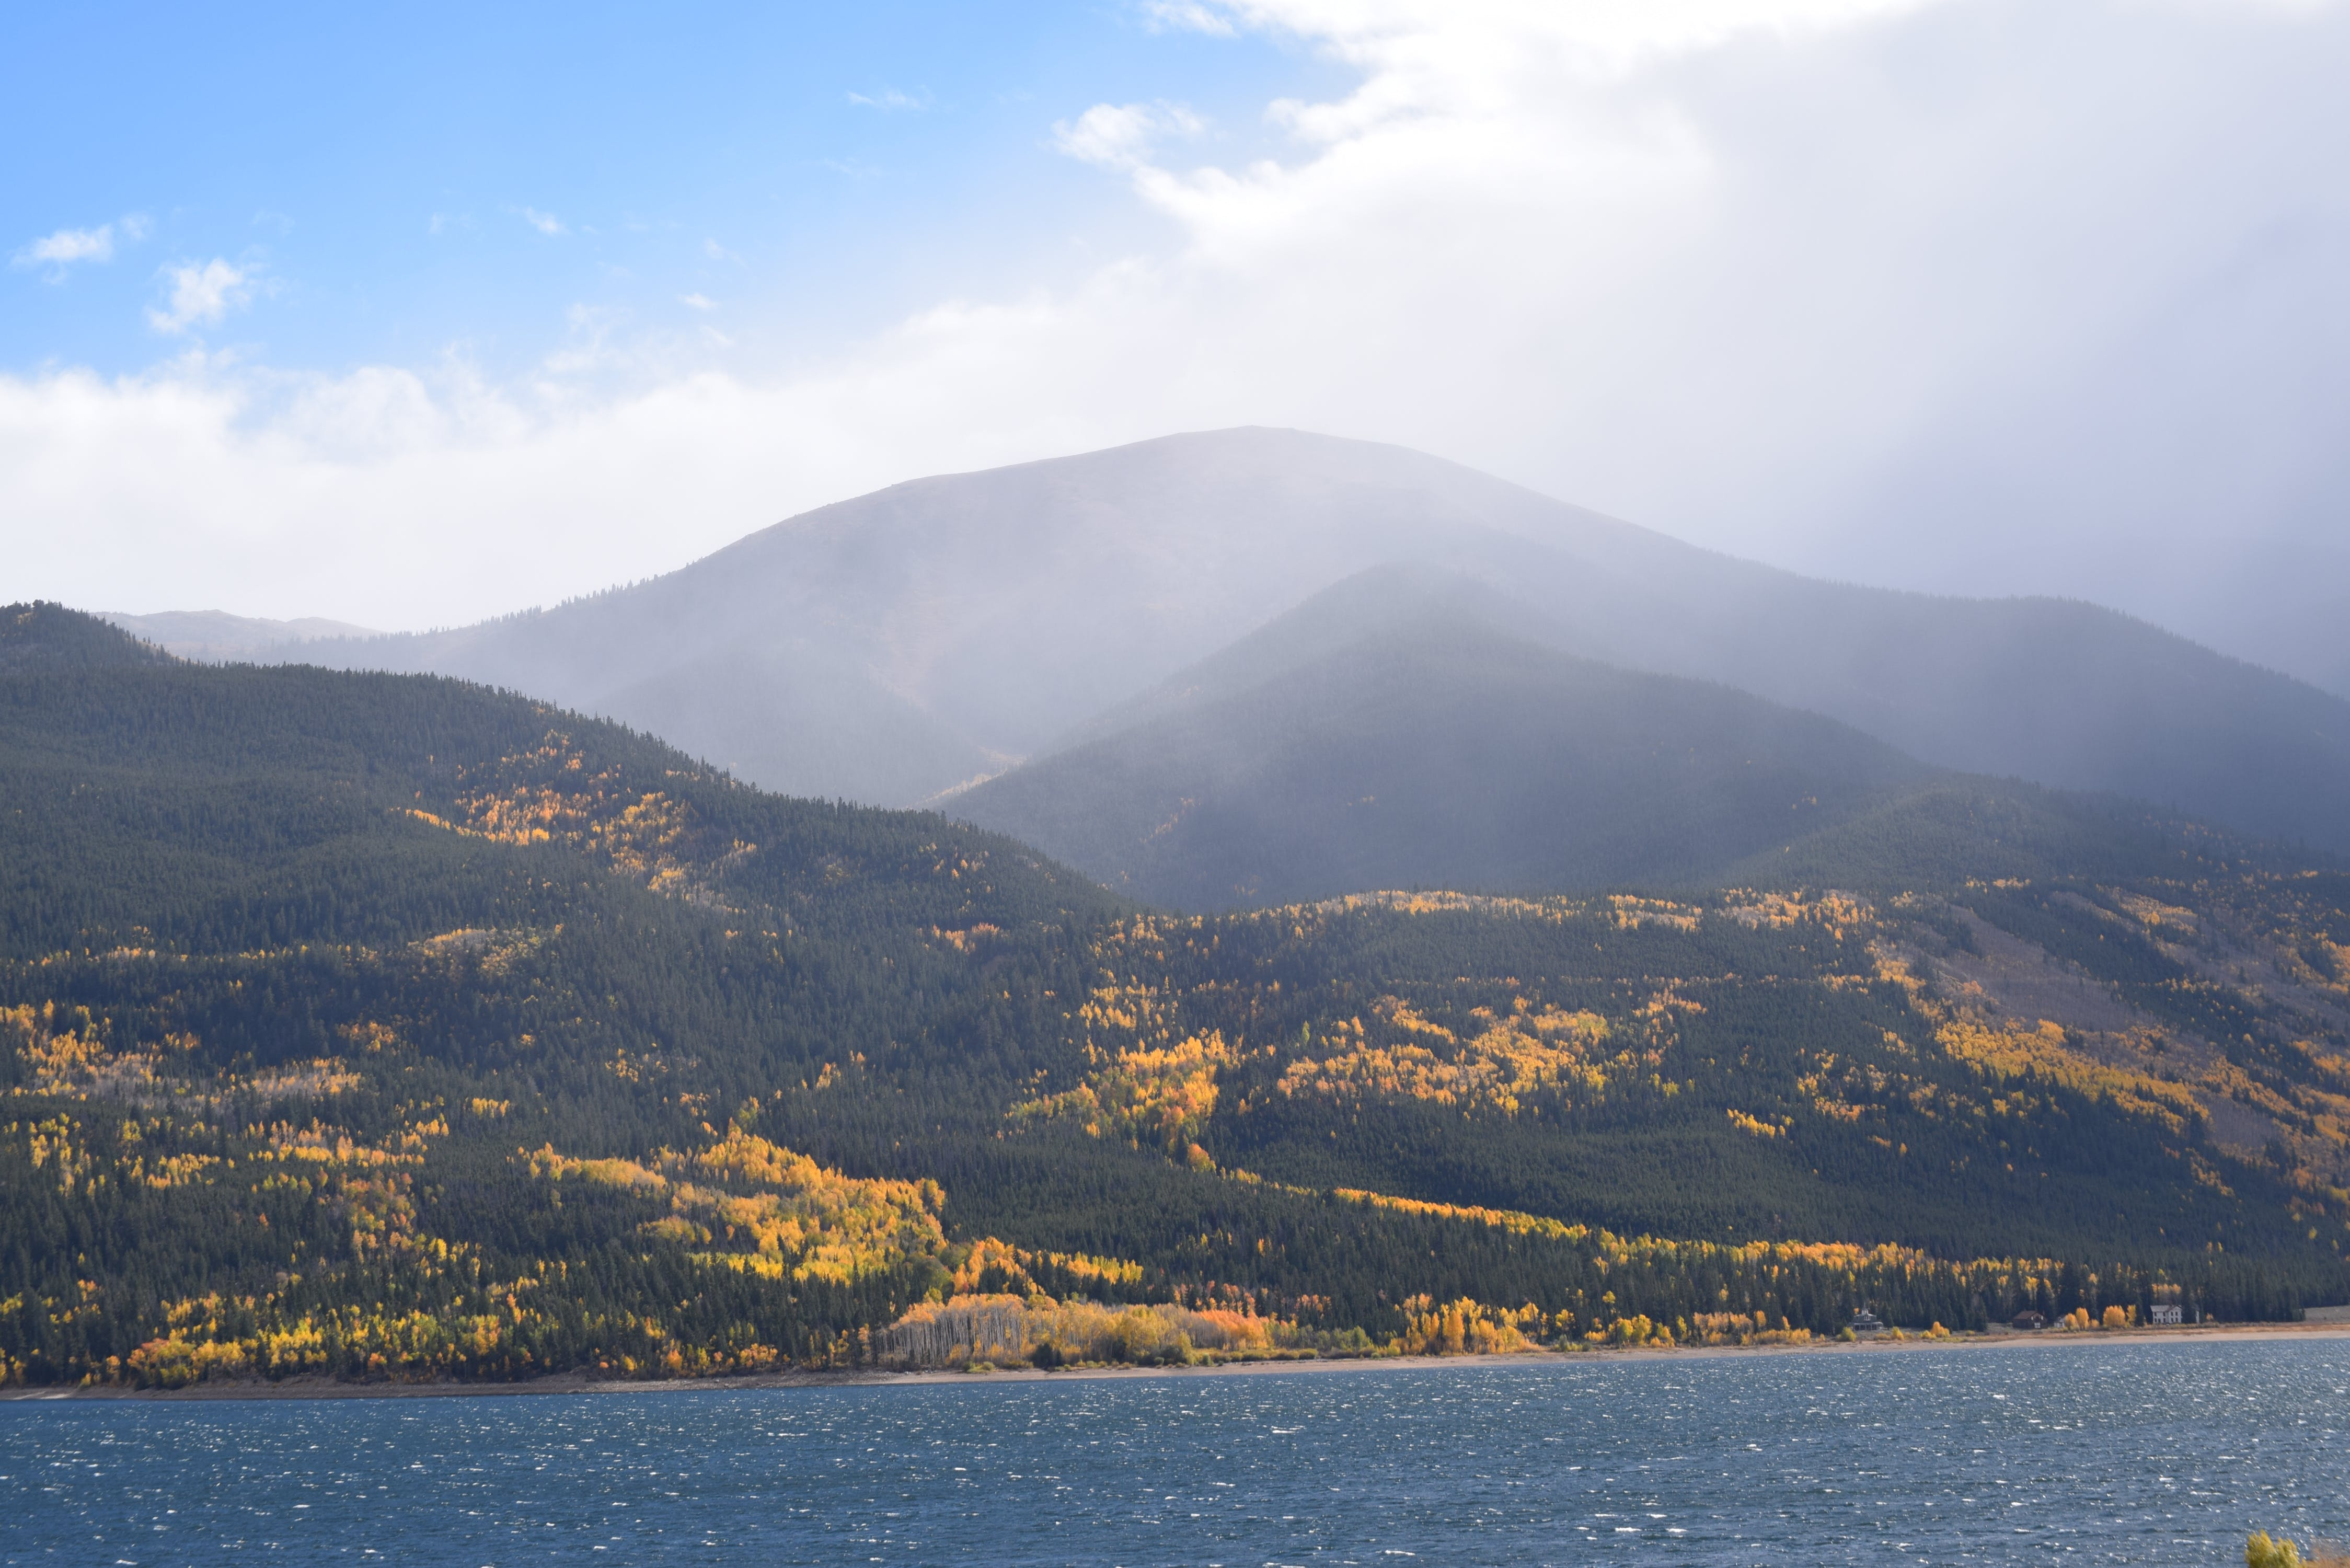 Photograph of Hills and Mountains